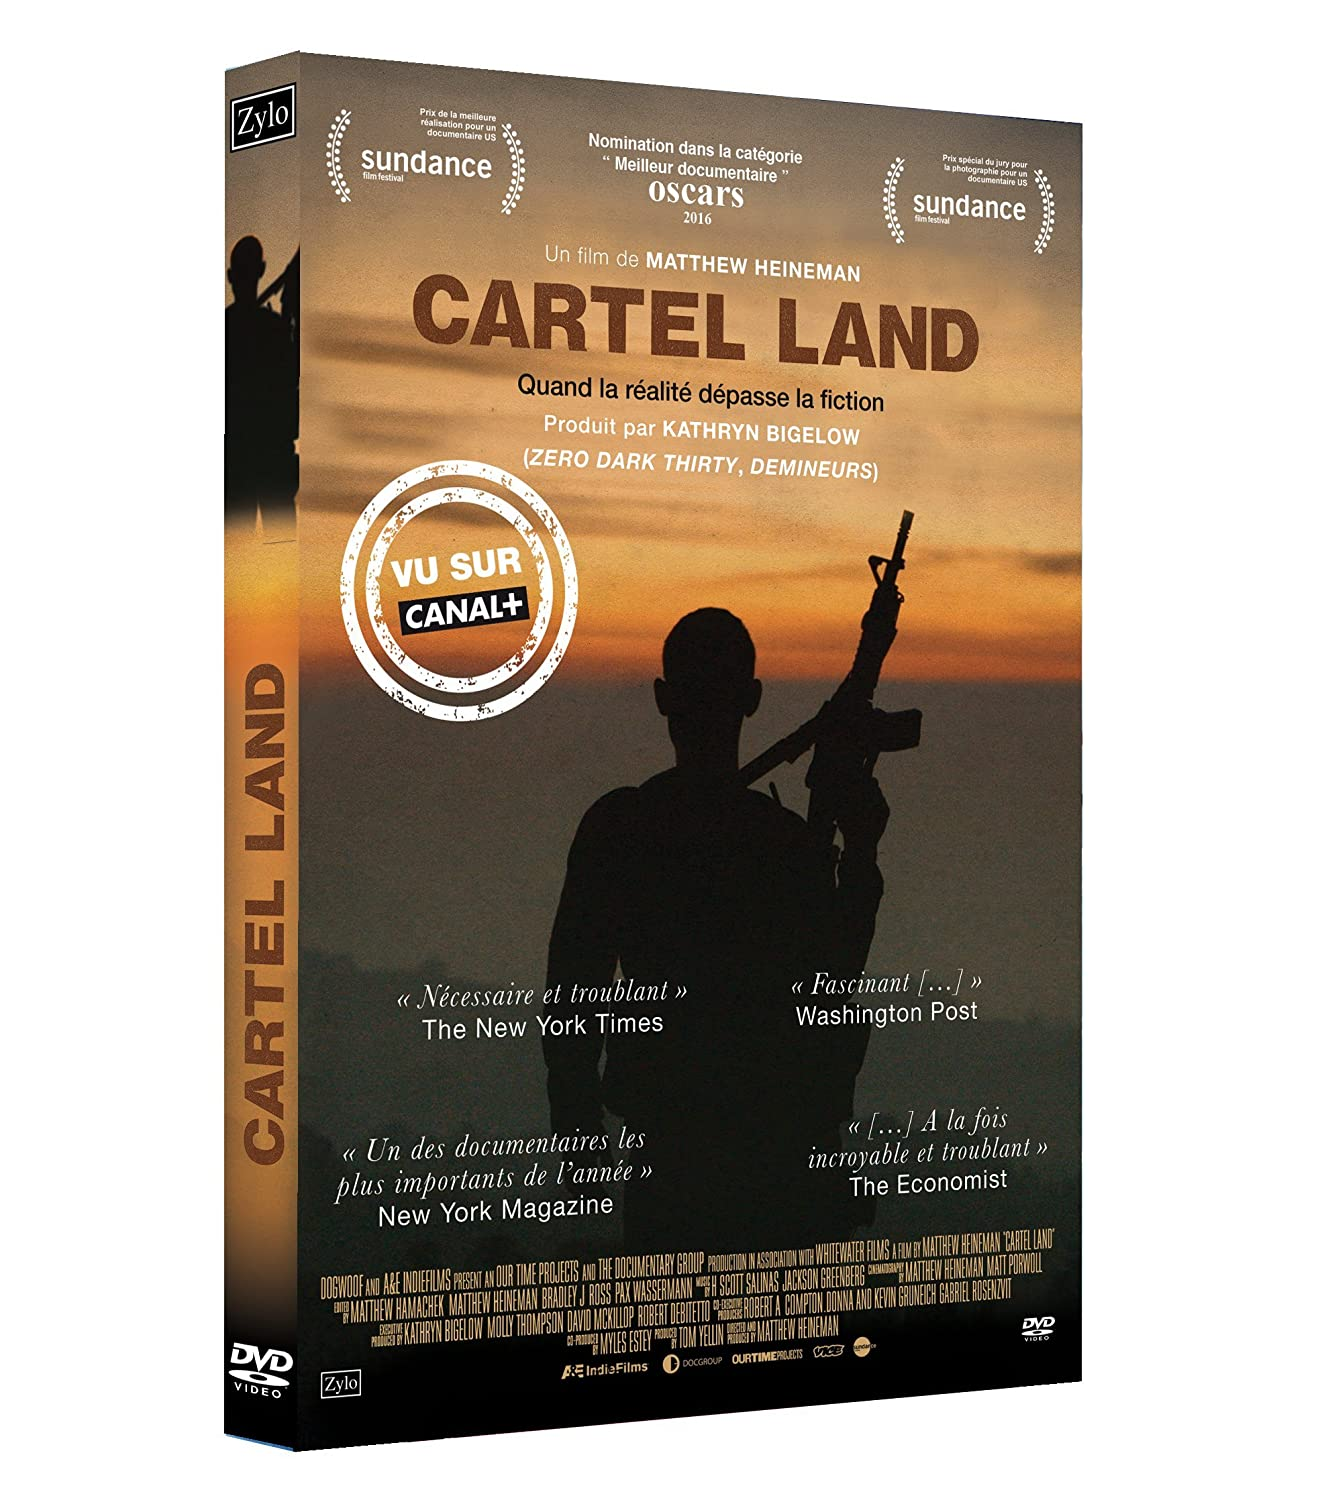 Amazon.com: Cartel land: Movies & TV